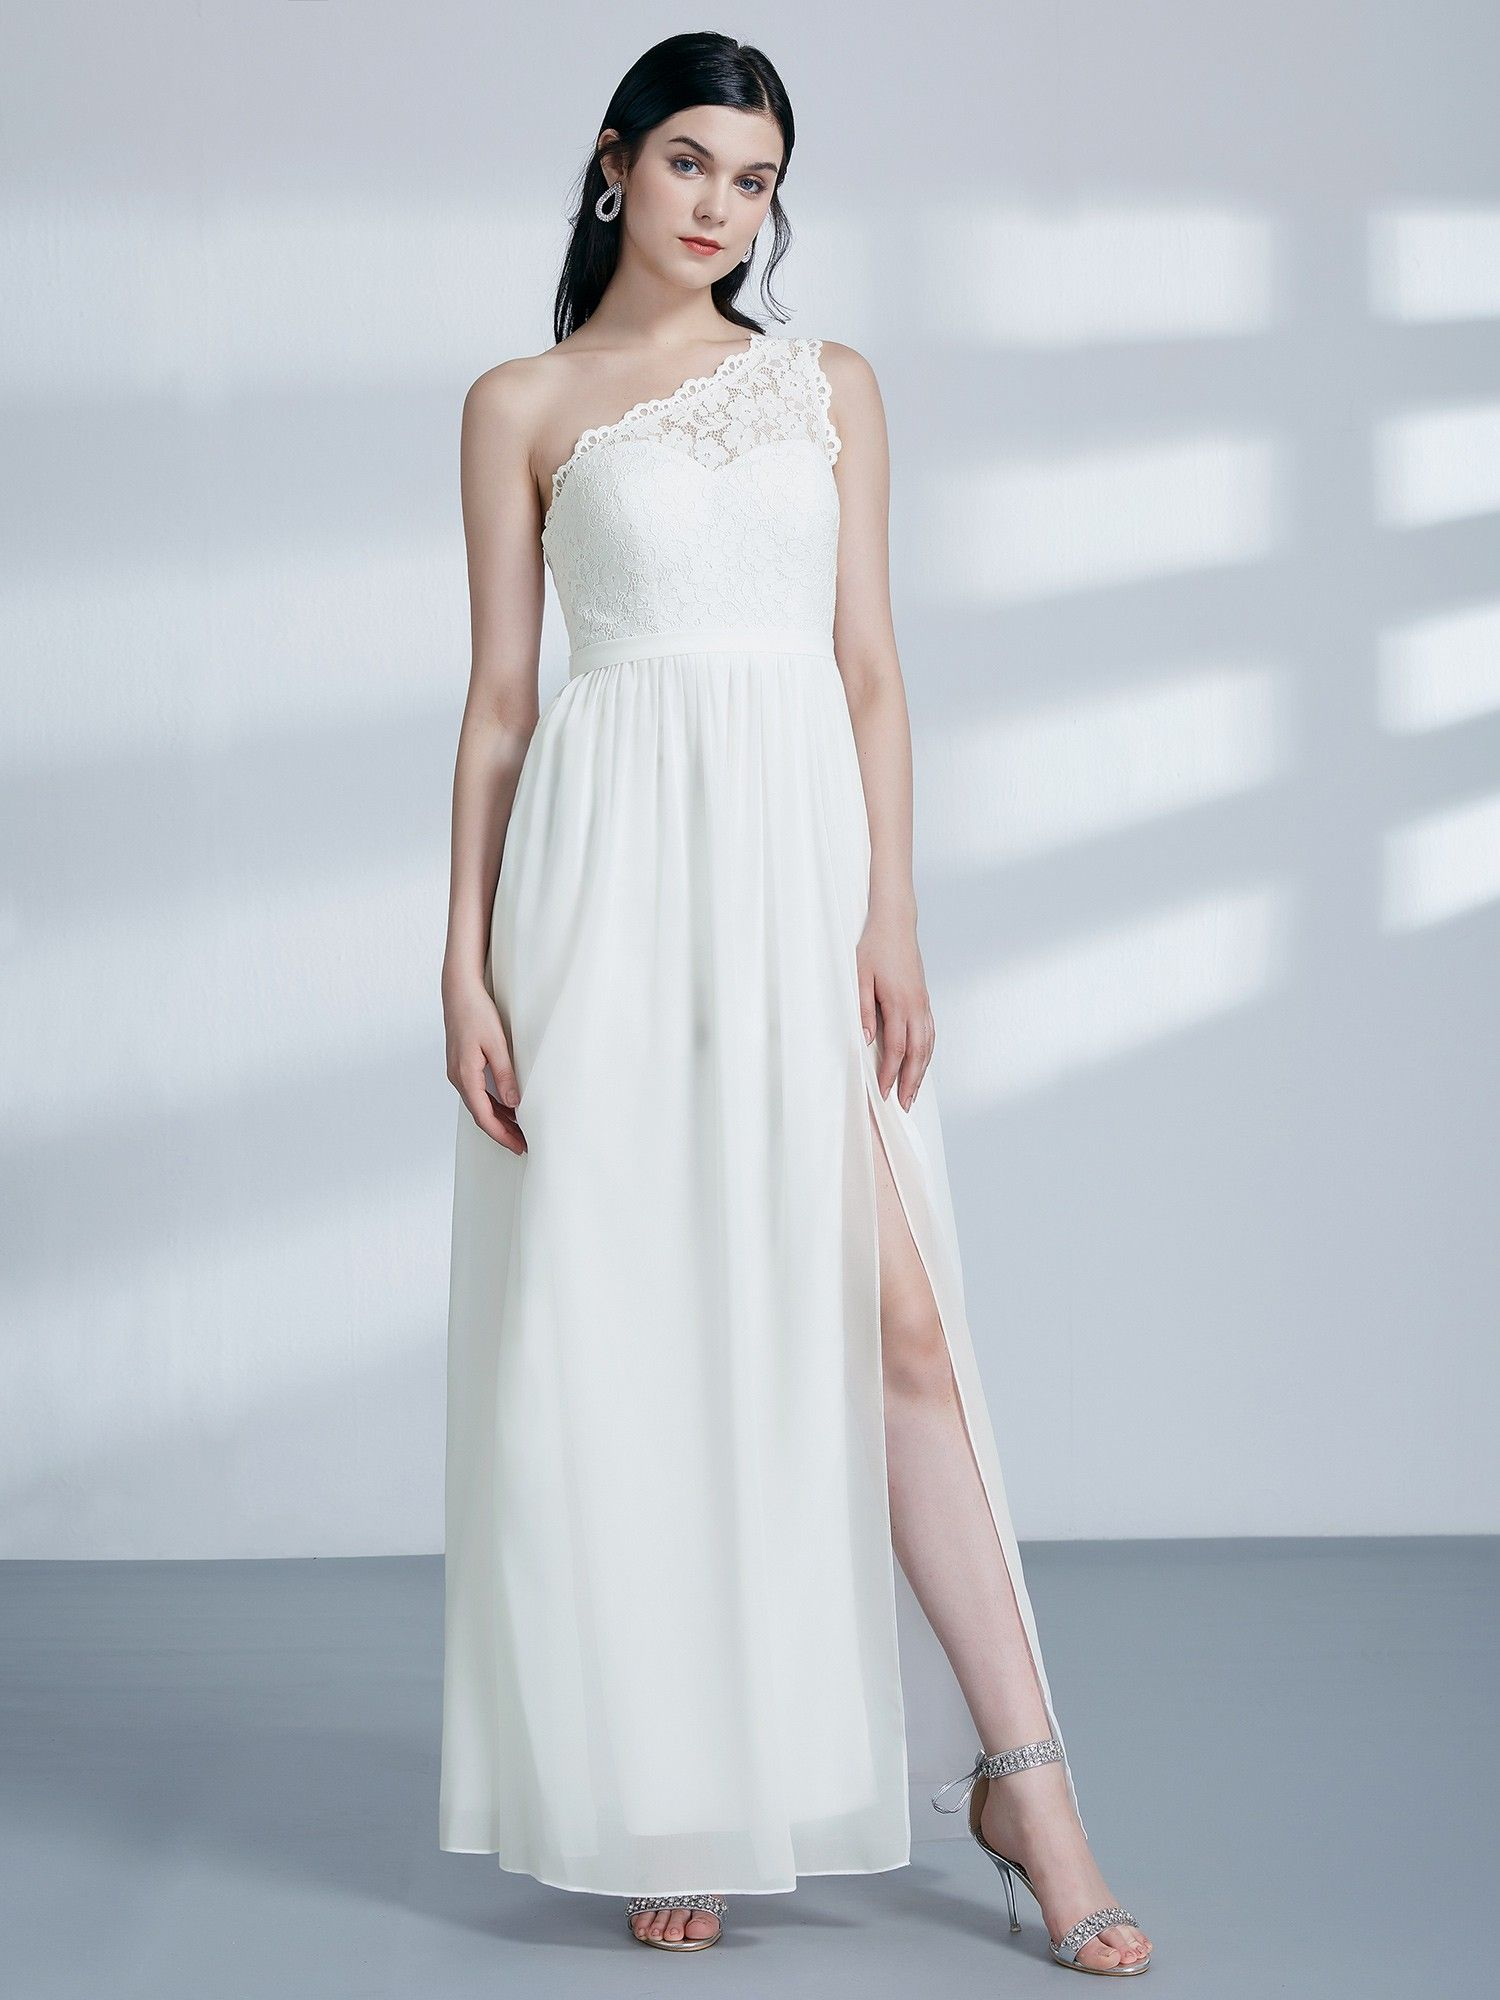 ab6a5767971 Long One Shoulder Formal Party Dress